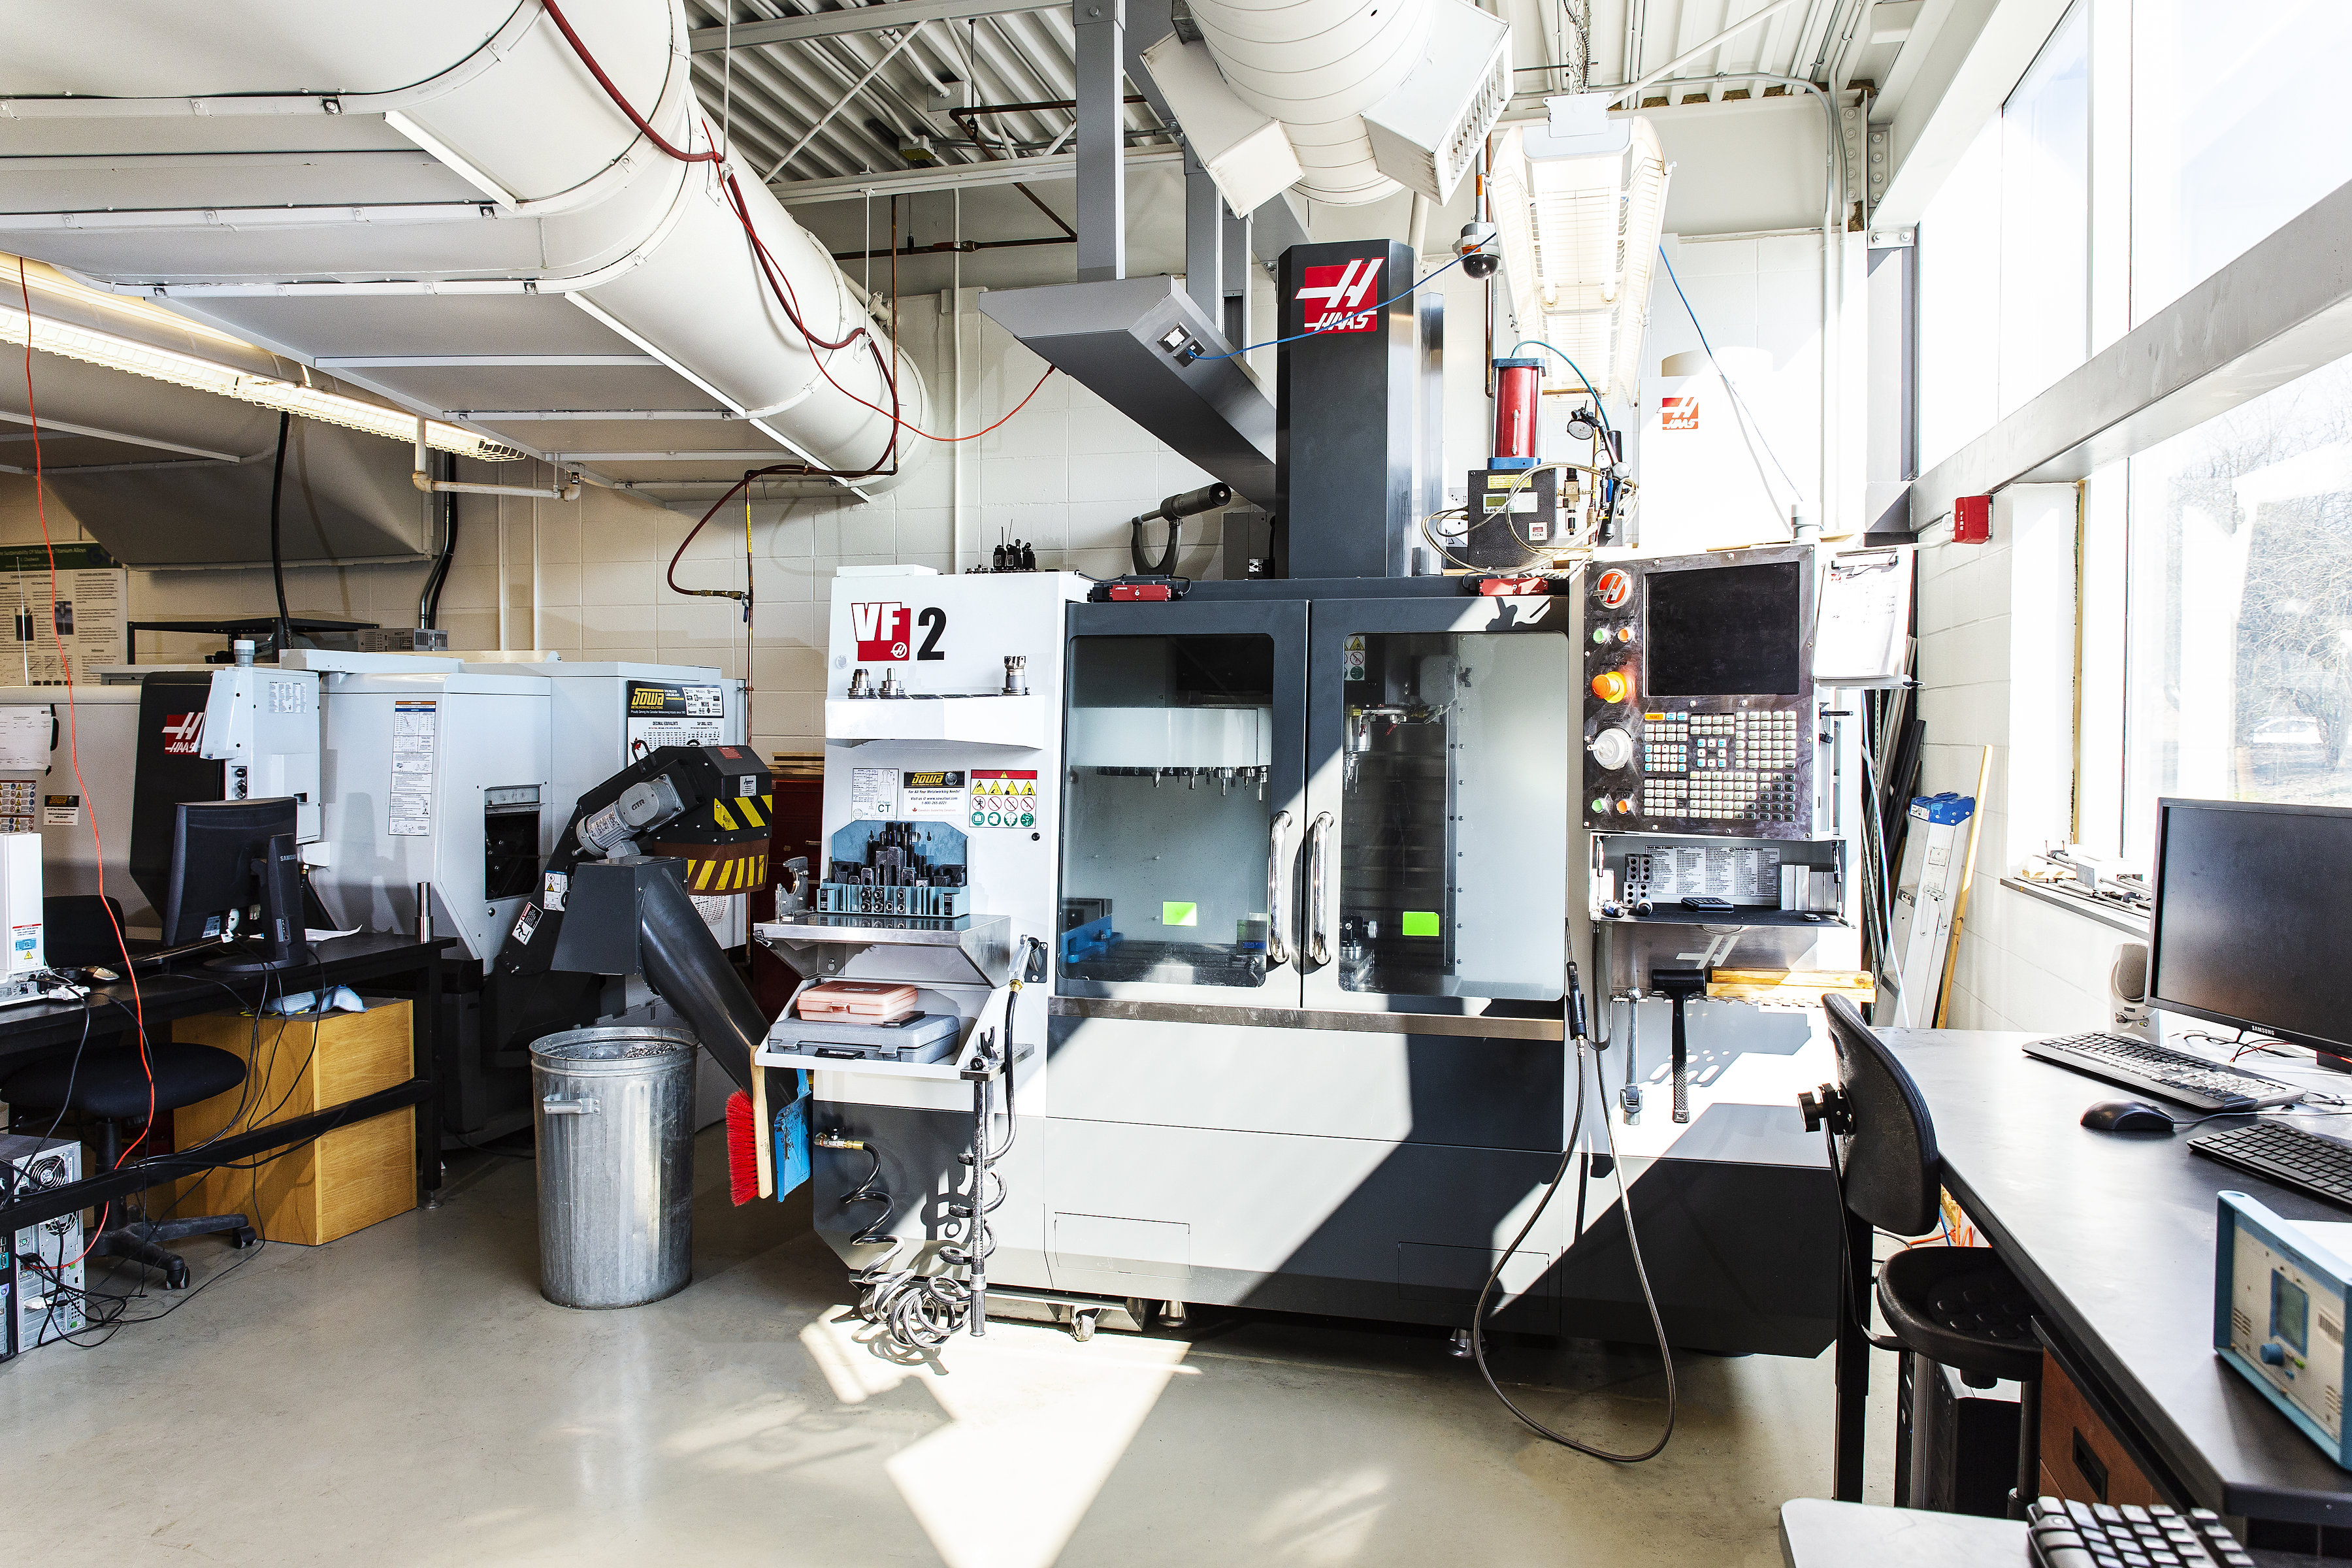 The University of Guelph's Advanced Manufacturing Lab. Photo via University of Guelph.